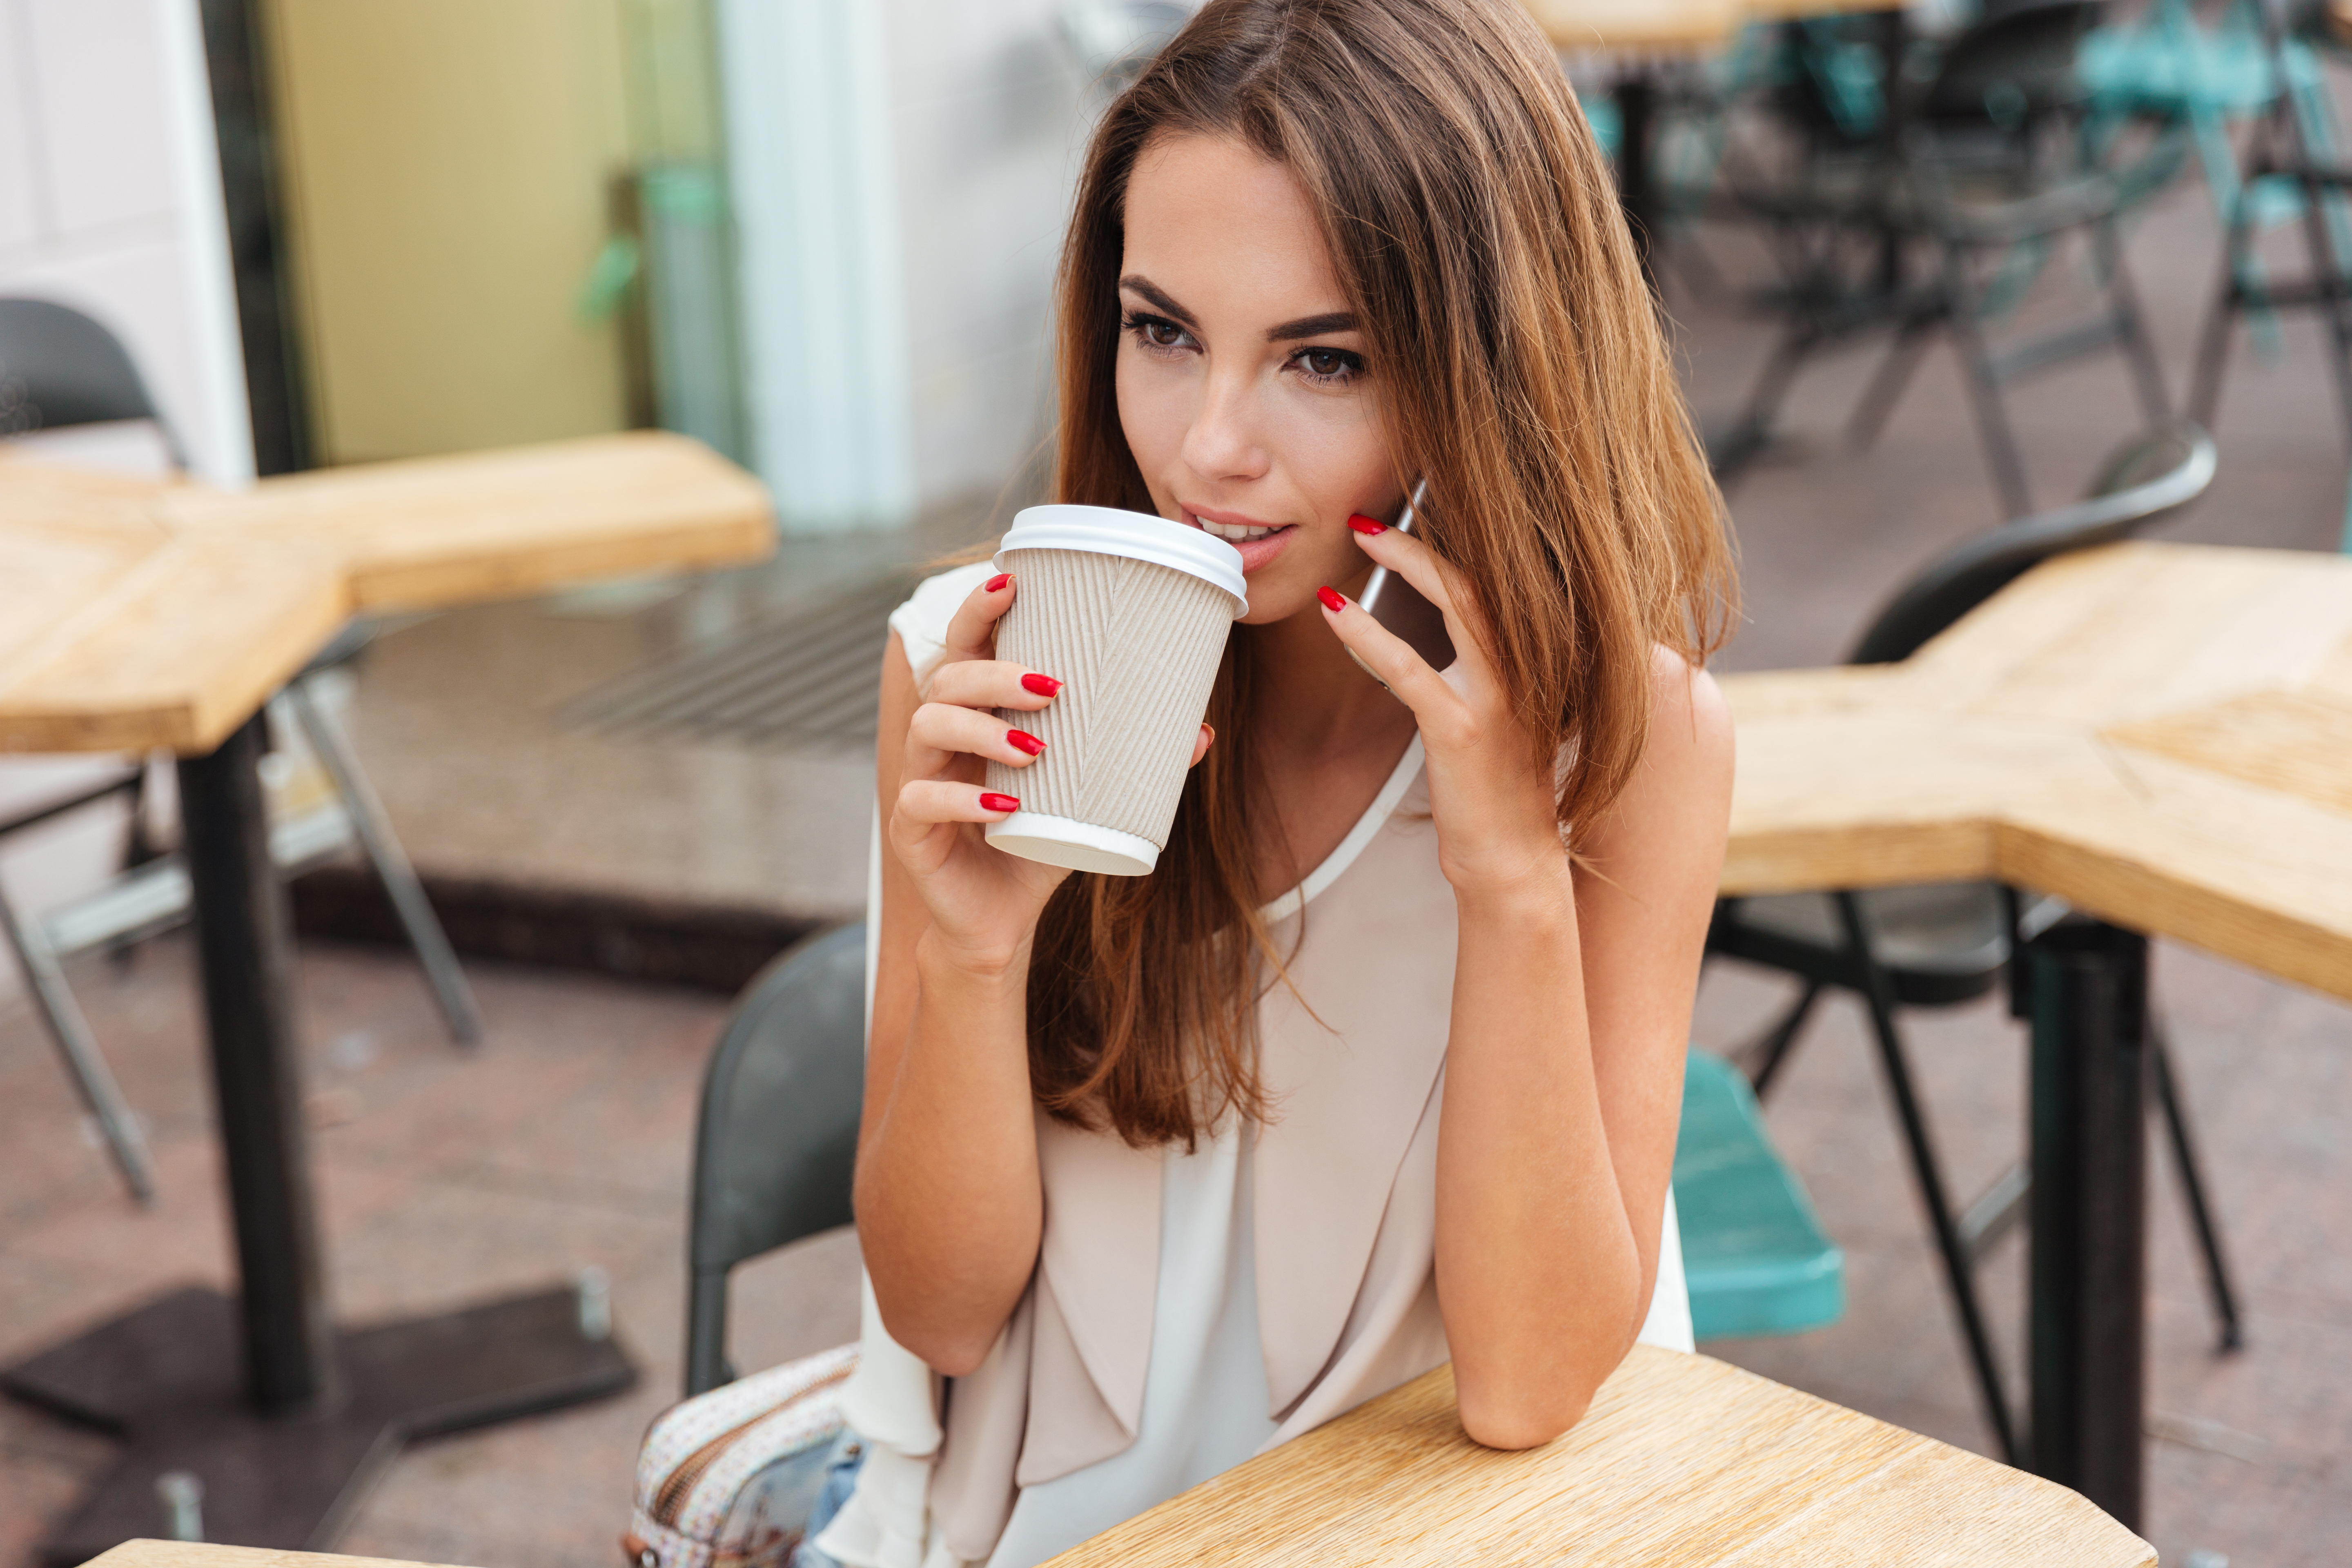 graphicstock smiling beautiful young woman drinking coffee and talking on cell phone while sitting in cafe SO7ZLLiHnx - Smiling beautiful woman drinking coffee and talking on cell phone